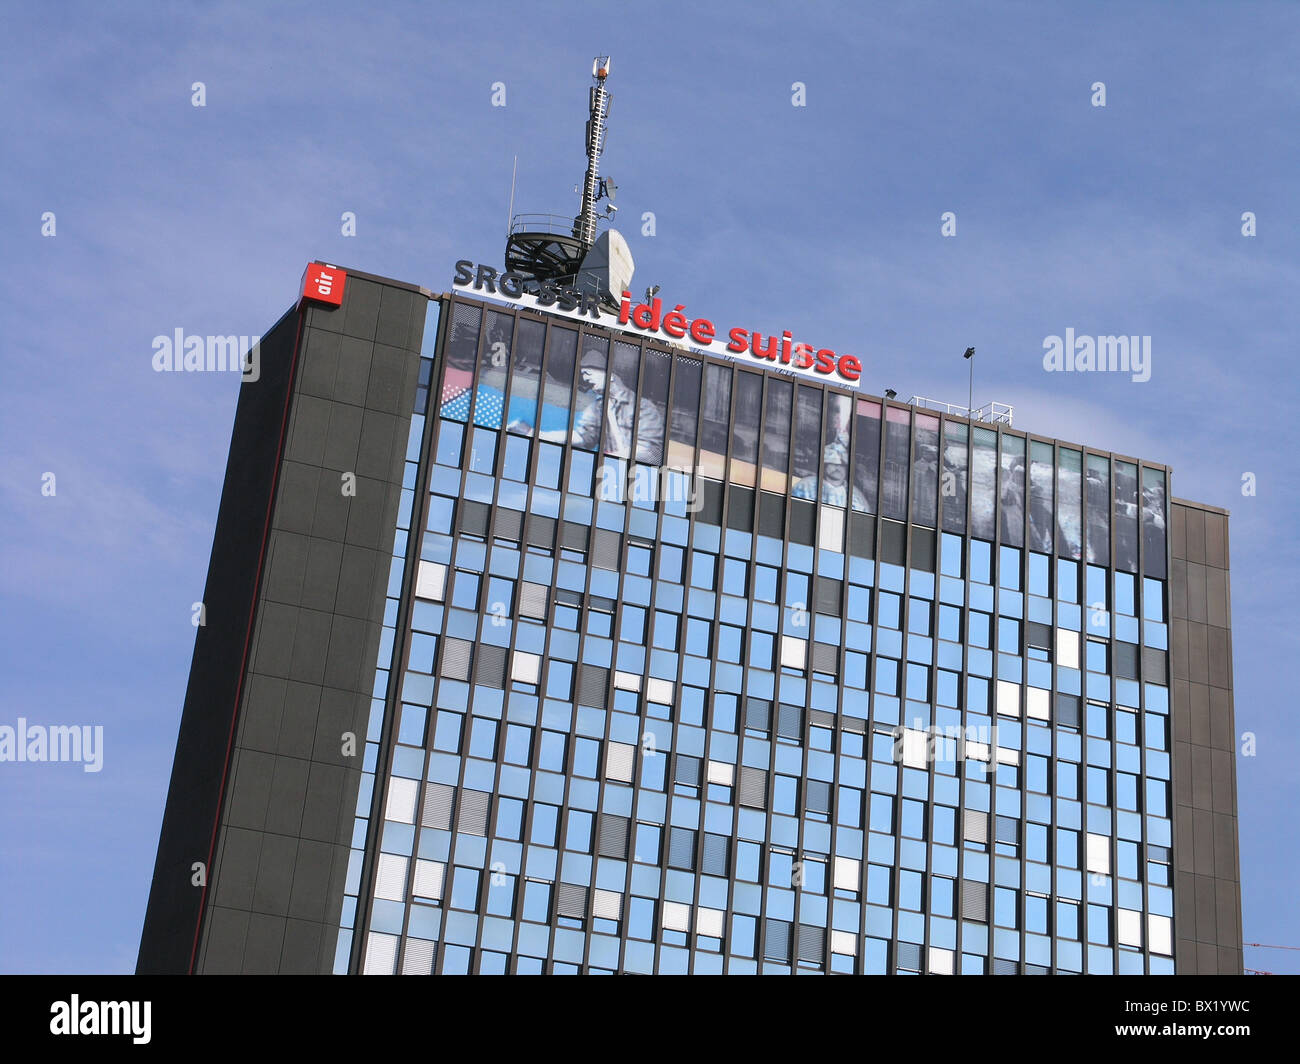 highrise towerblock multistory building communication construction High-rise building media radio SRG Swis - Stock Image